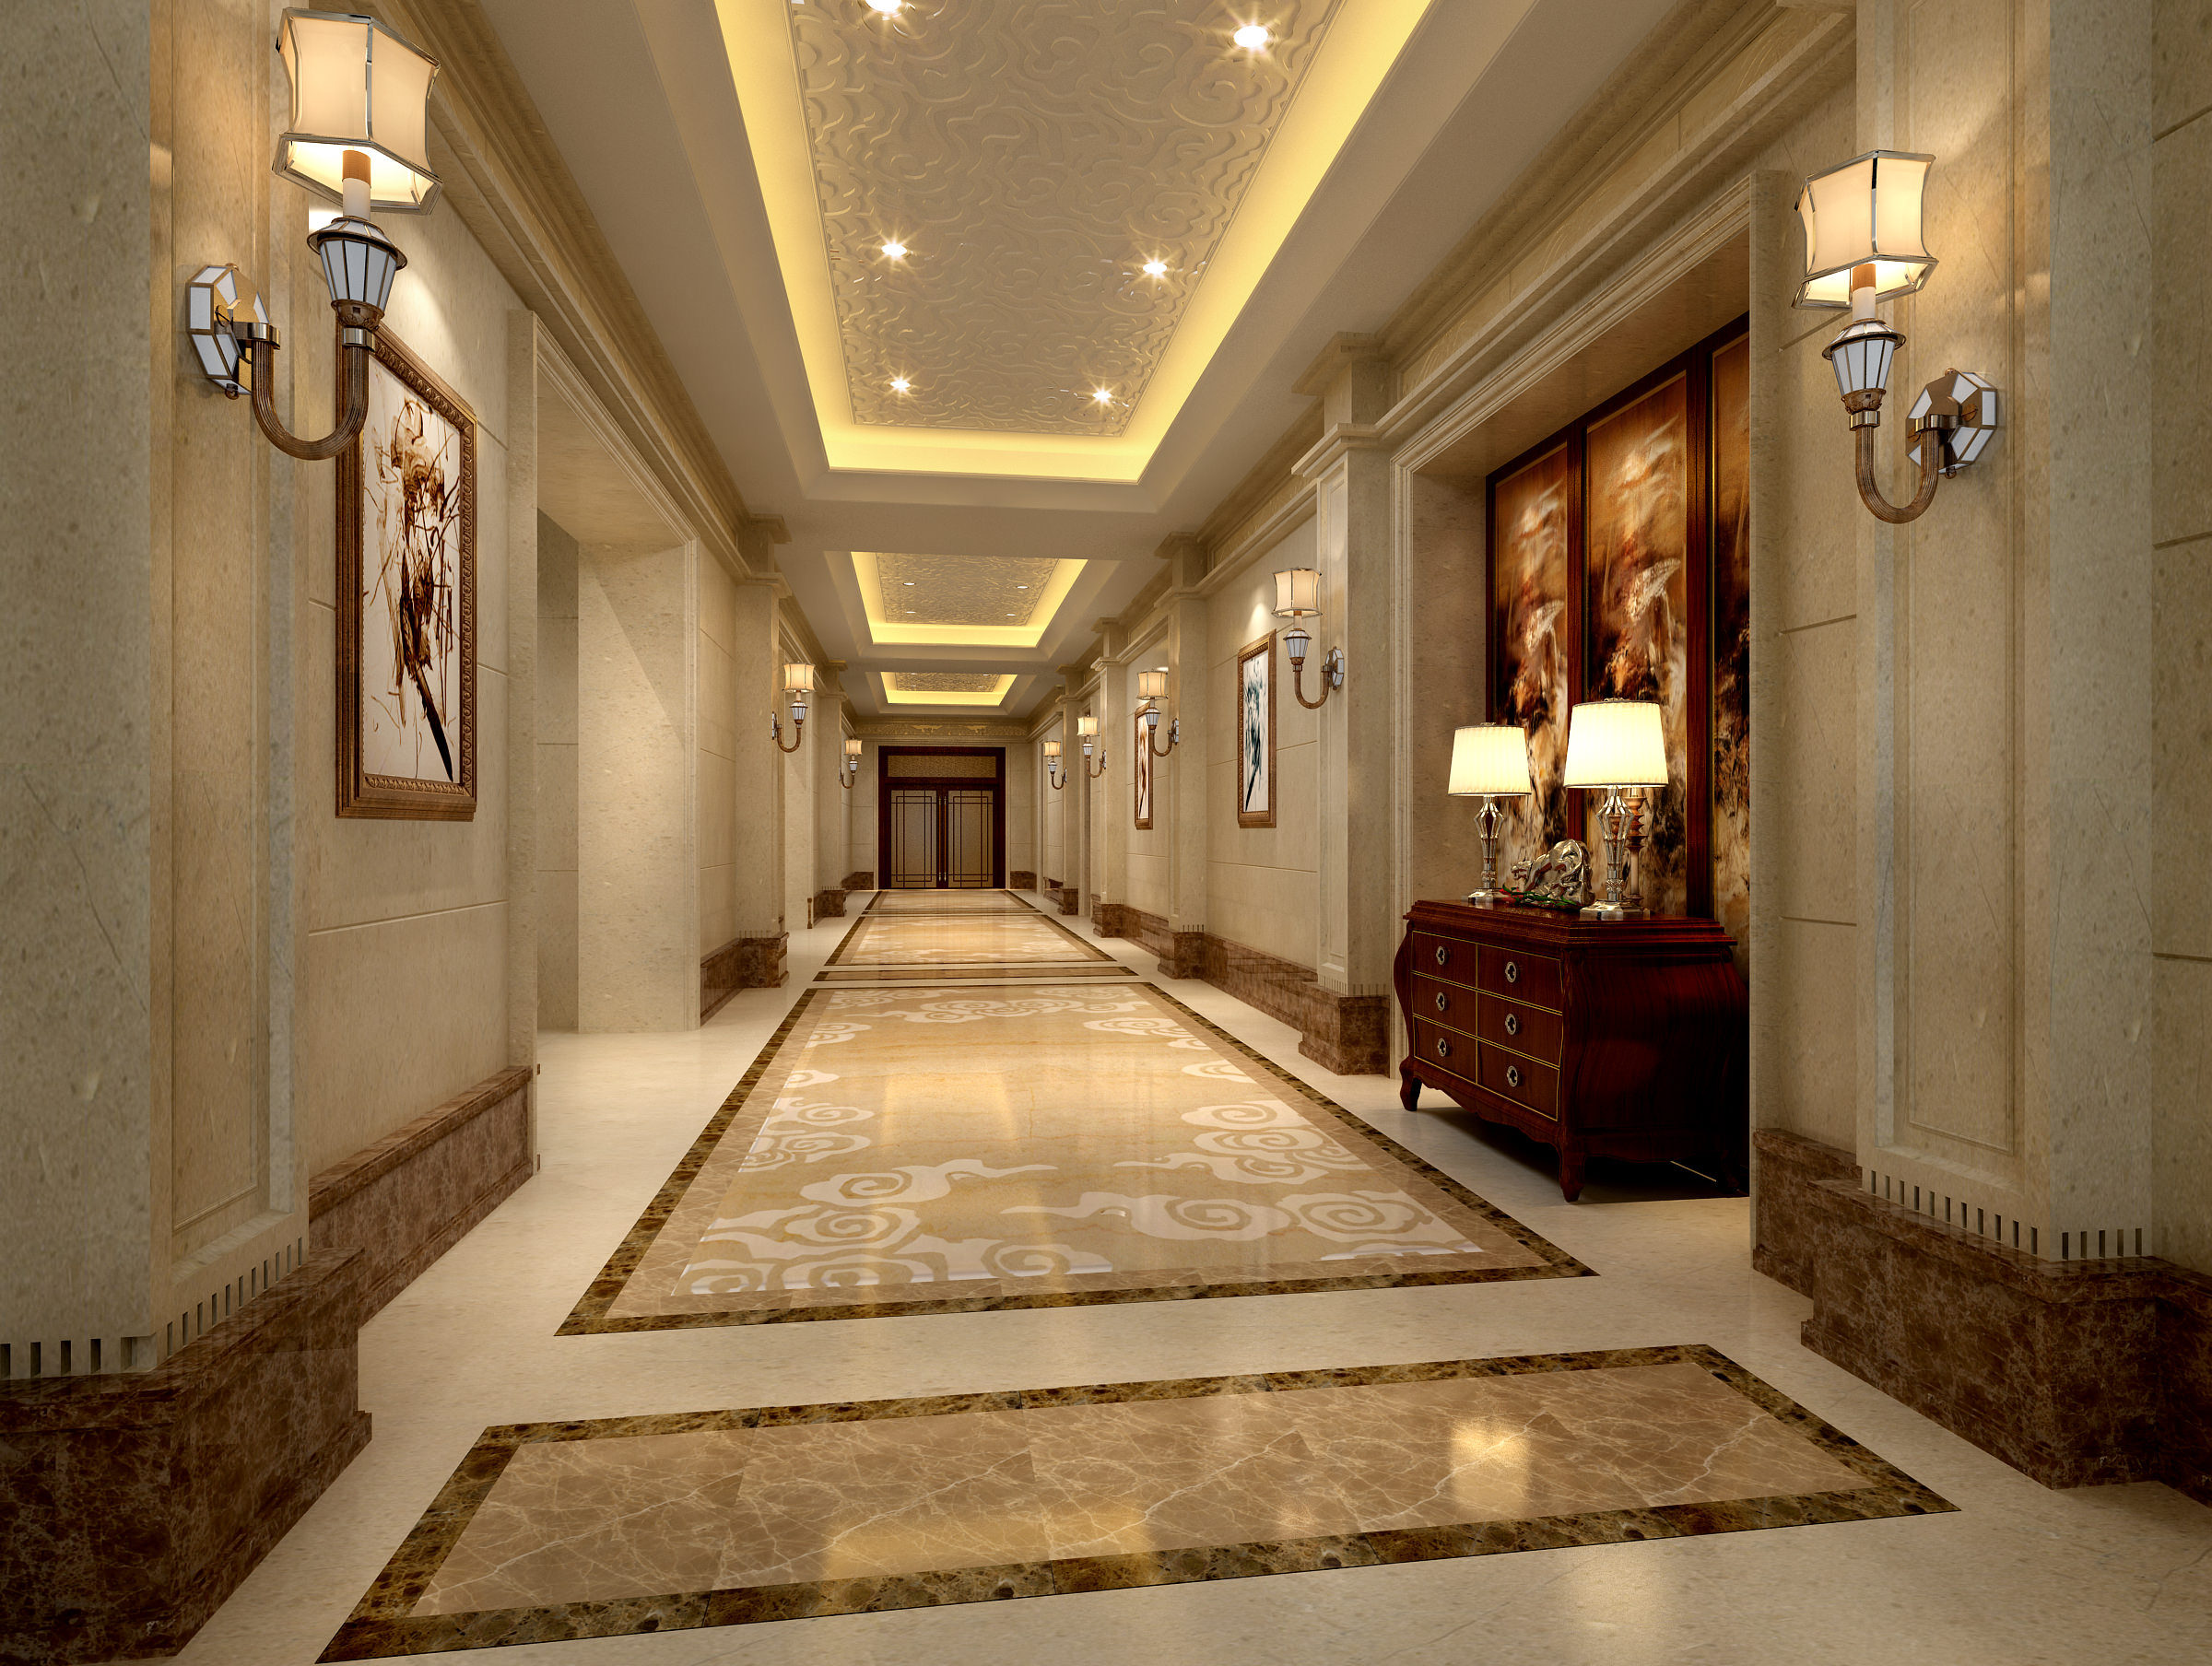 Luxury corridor hall 3d model max for Villa lobby interior design